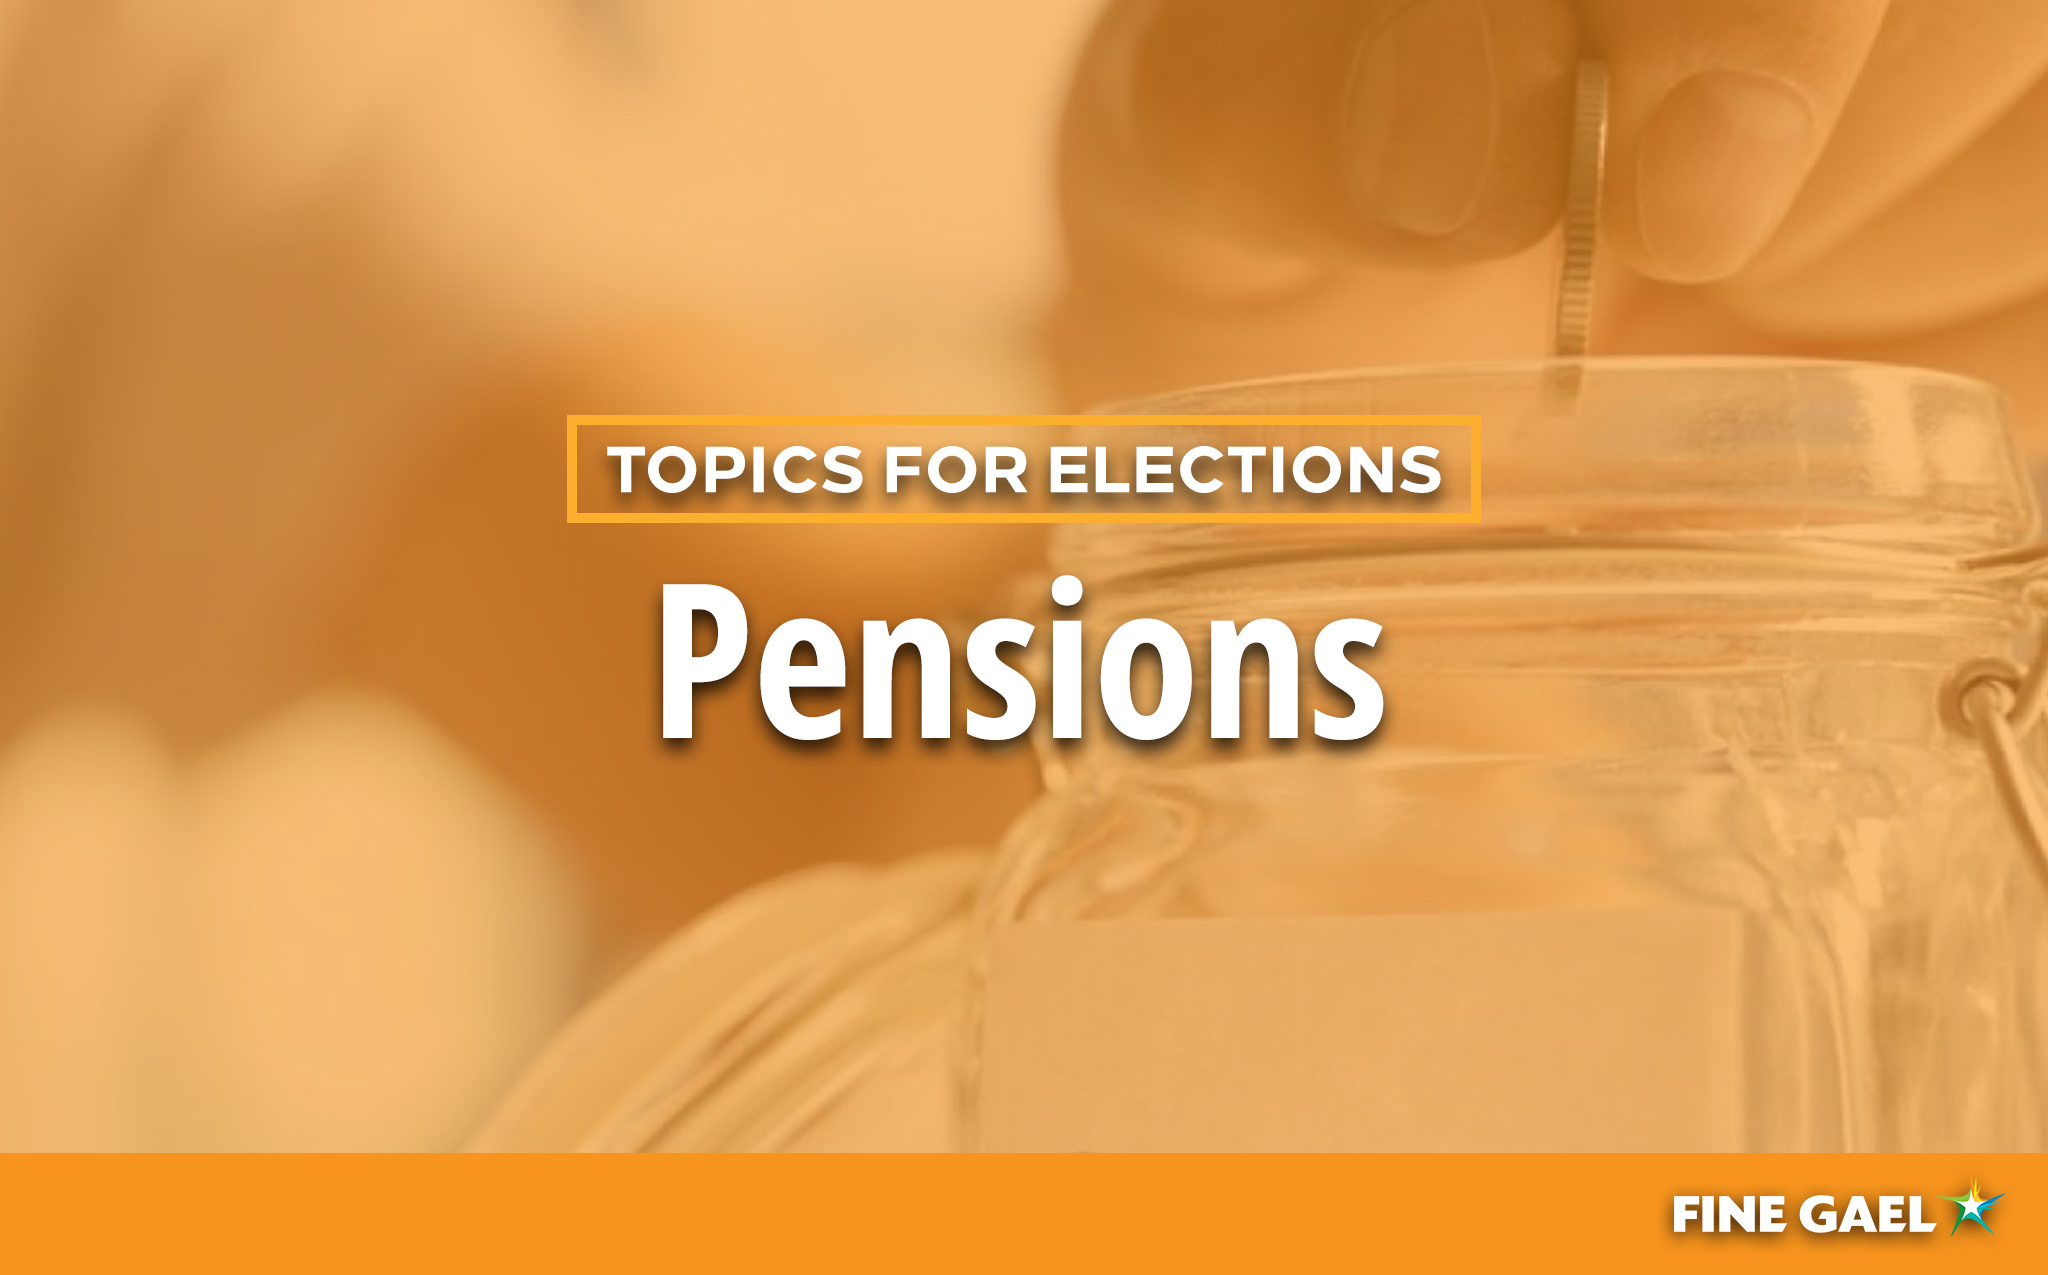 Topics for Elections - Pensions